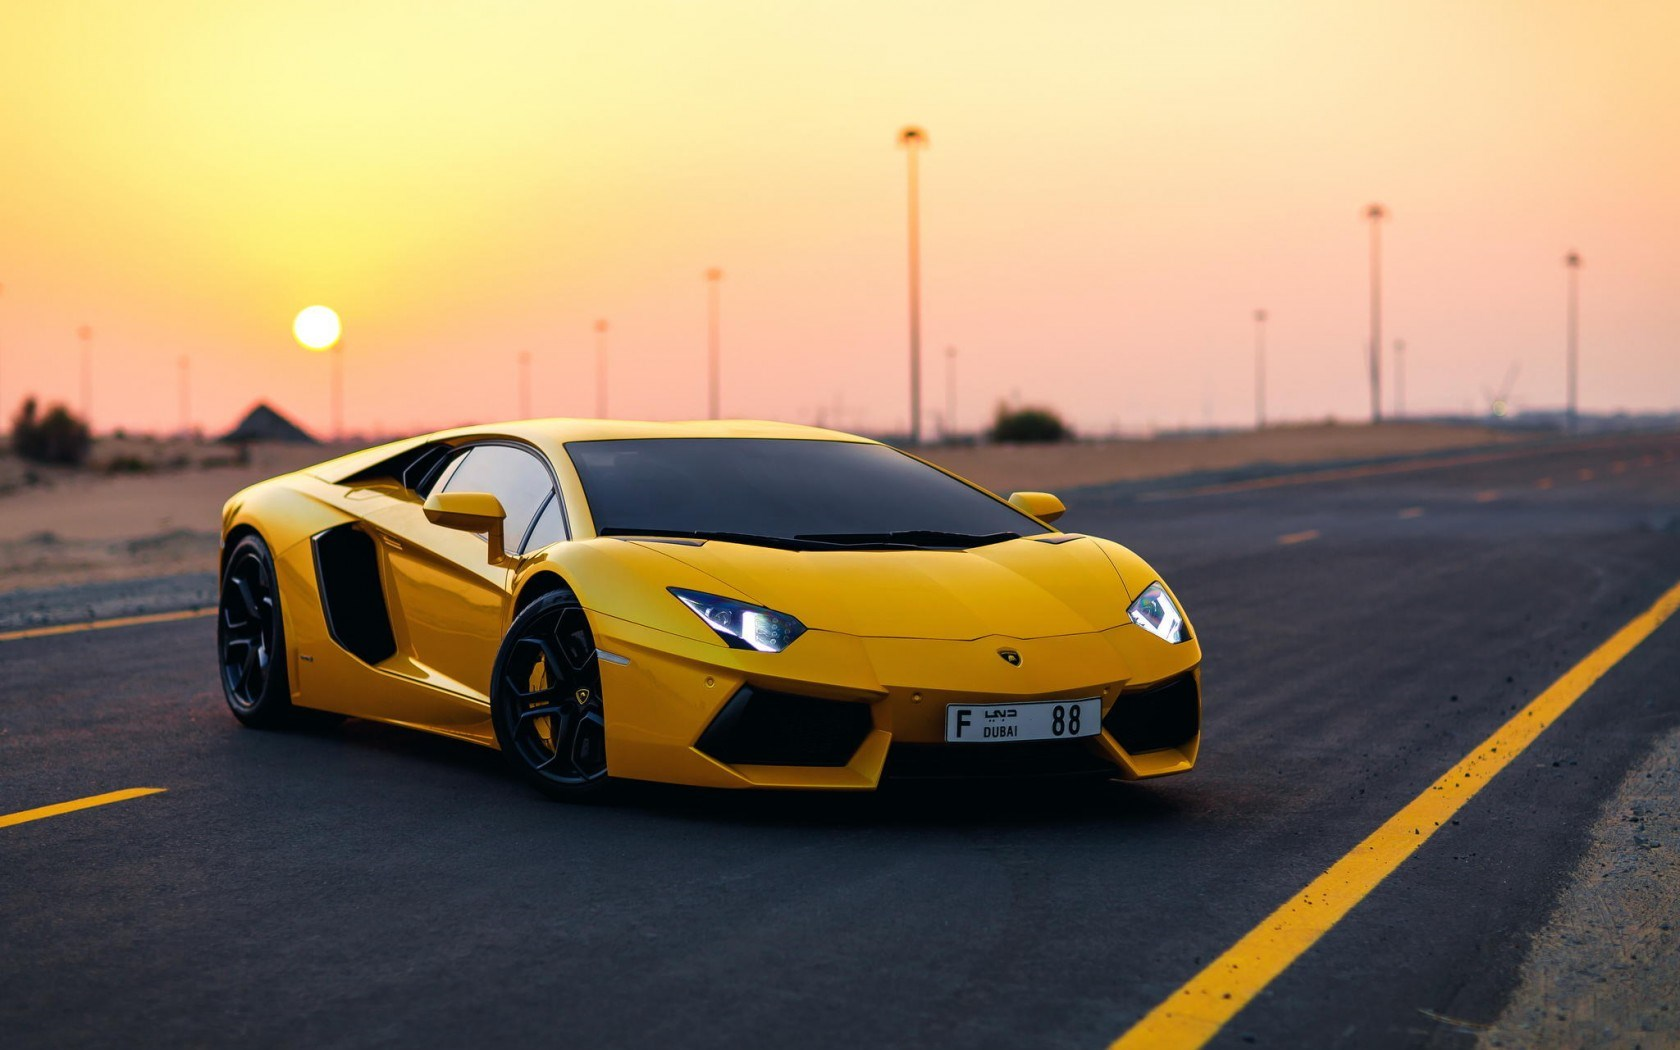 Here S Your Drop Dead Gorgeous Lamborghini Aventador Wallpaper